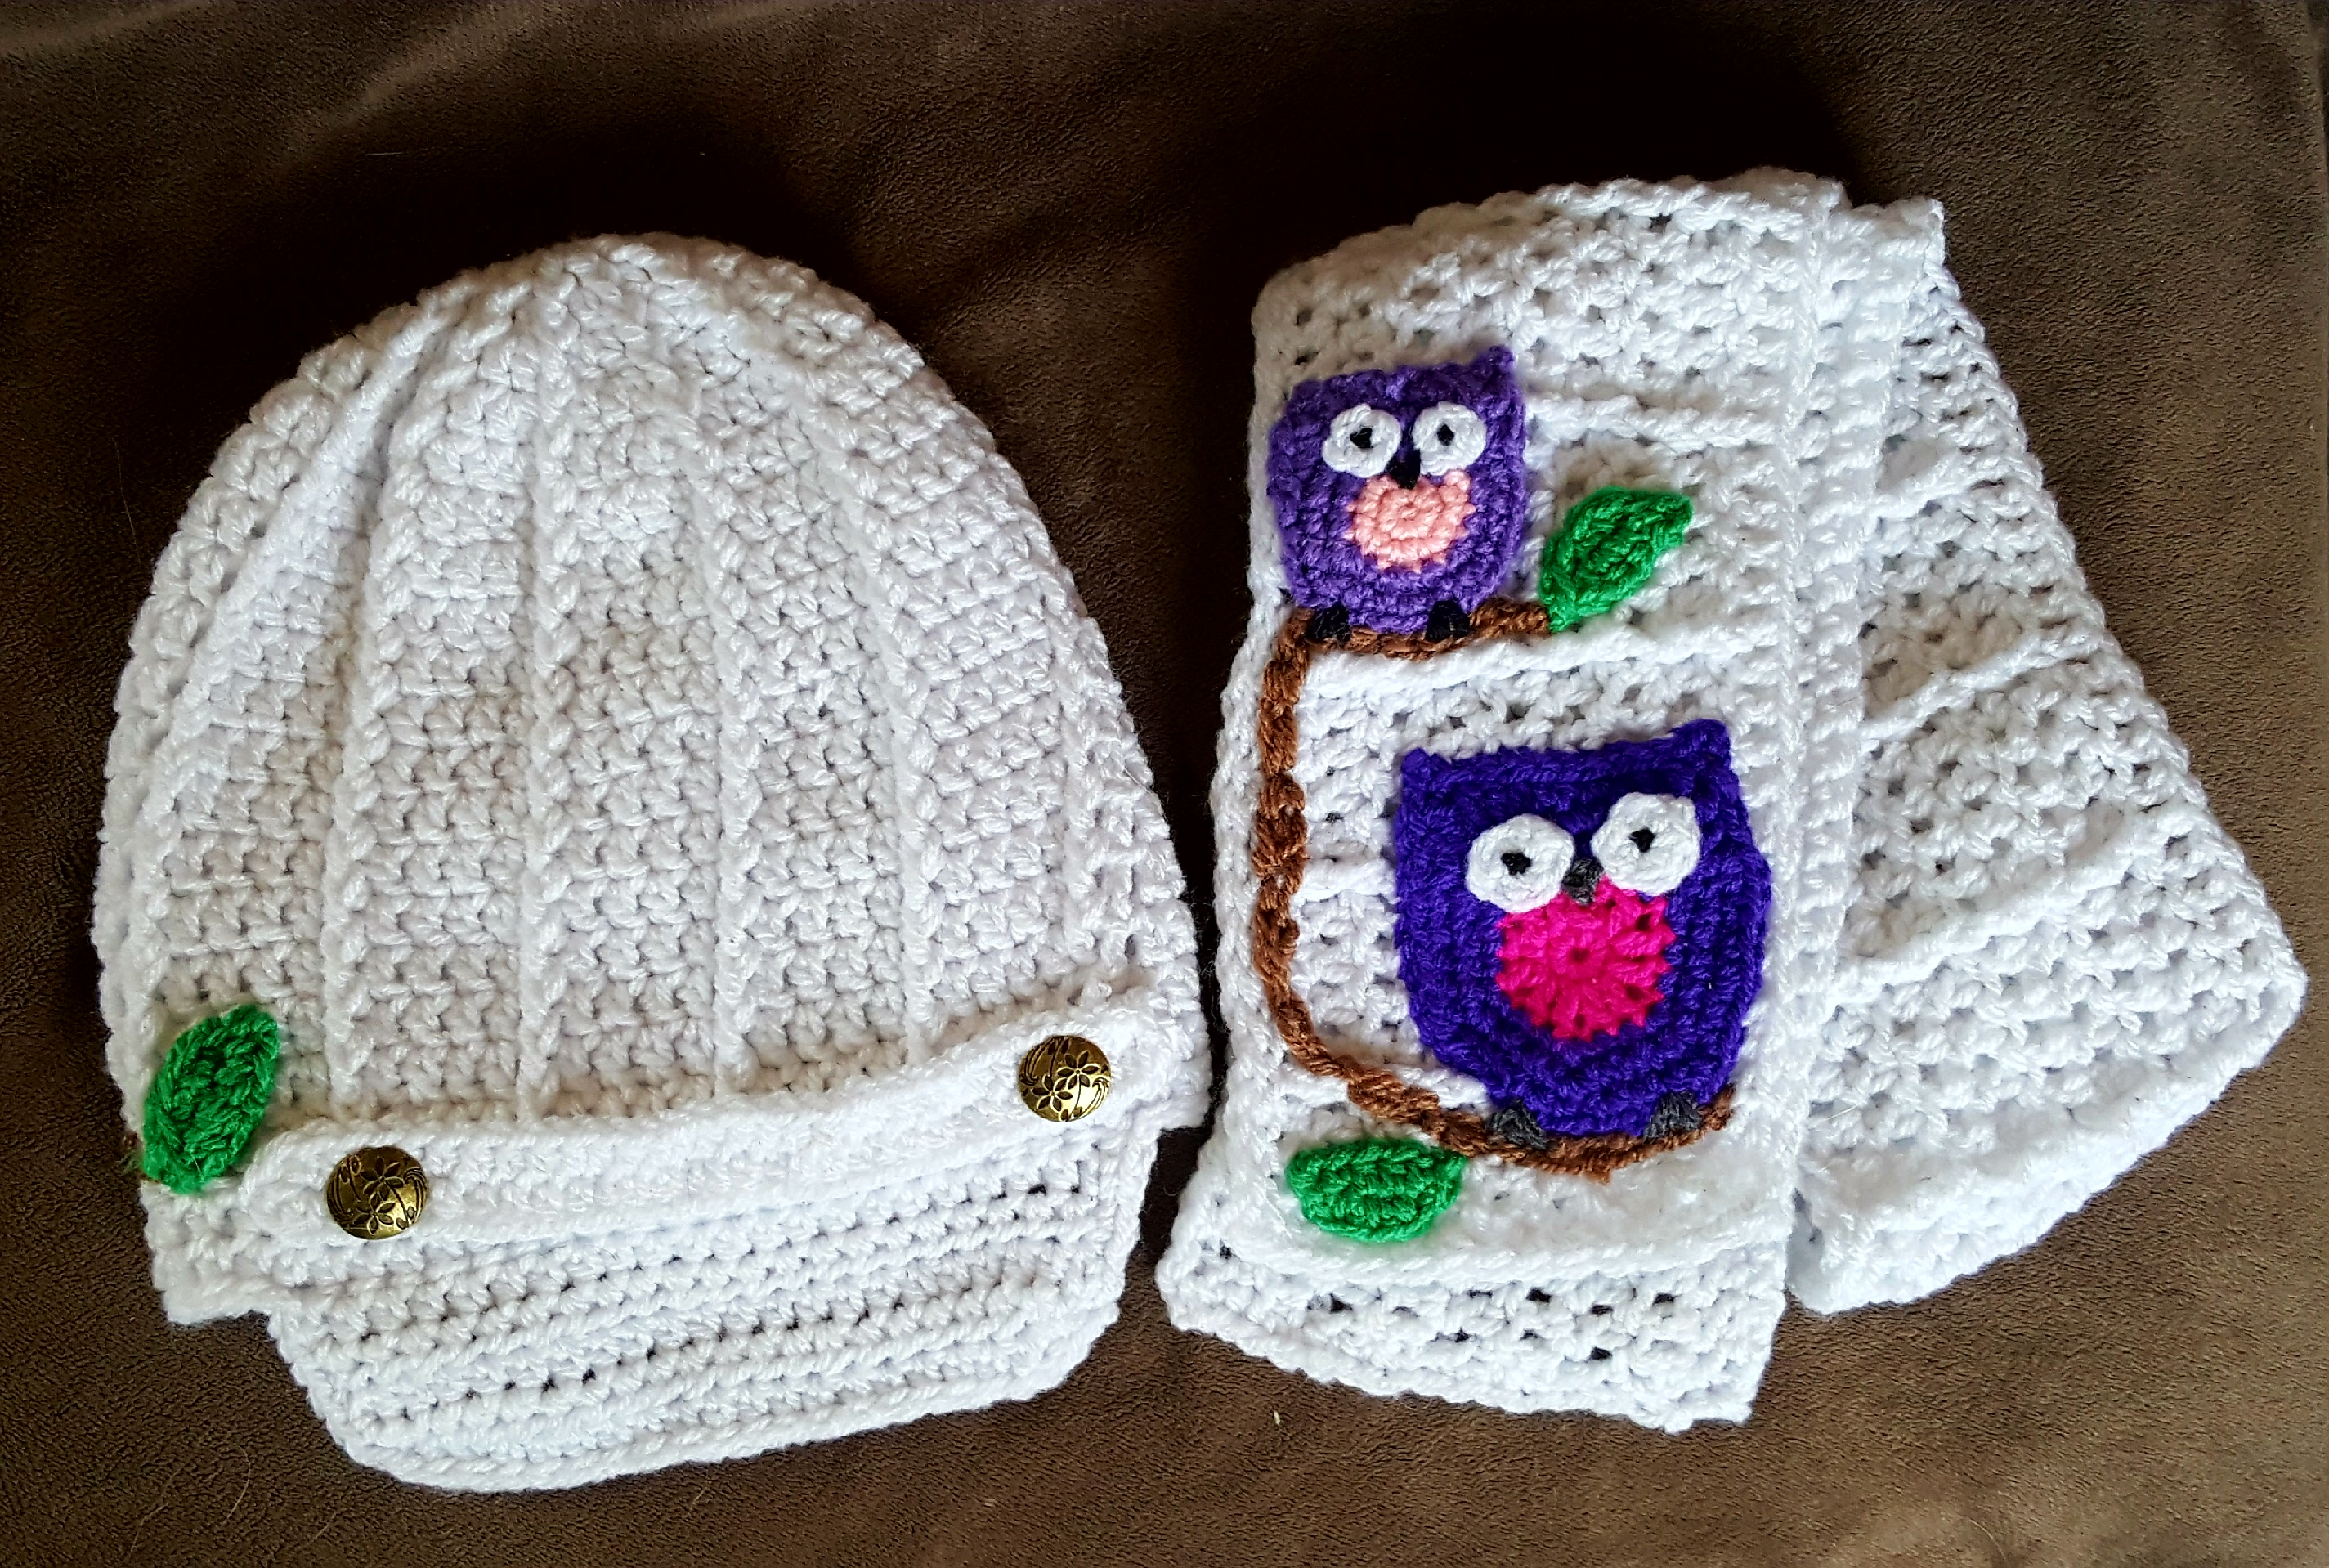 Scarf Crochet Pattern Free to Upgrade Your Winter Style Free Pattern For A Cute Crochet Hat And Scarf Set With Owl Motif